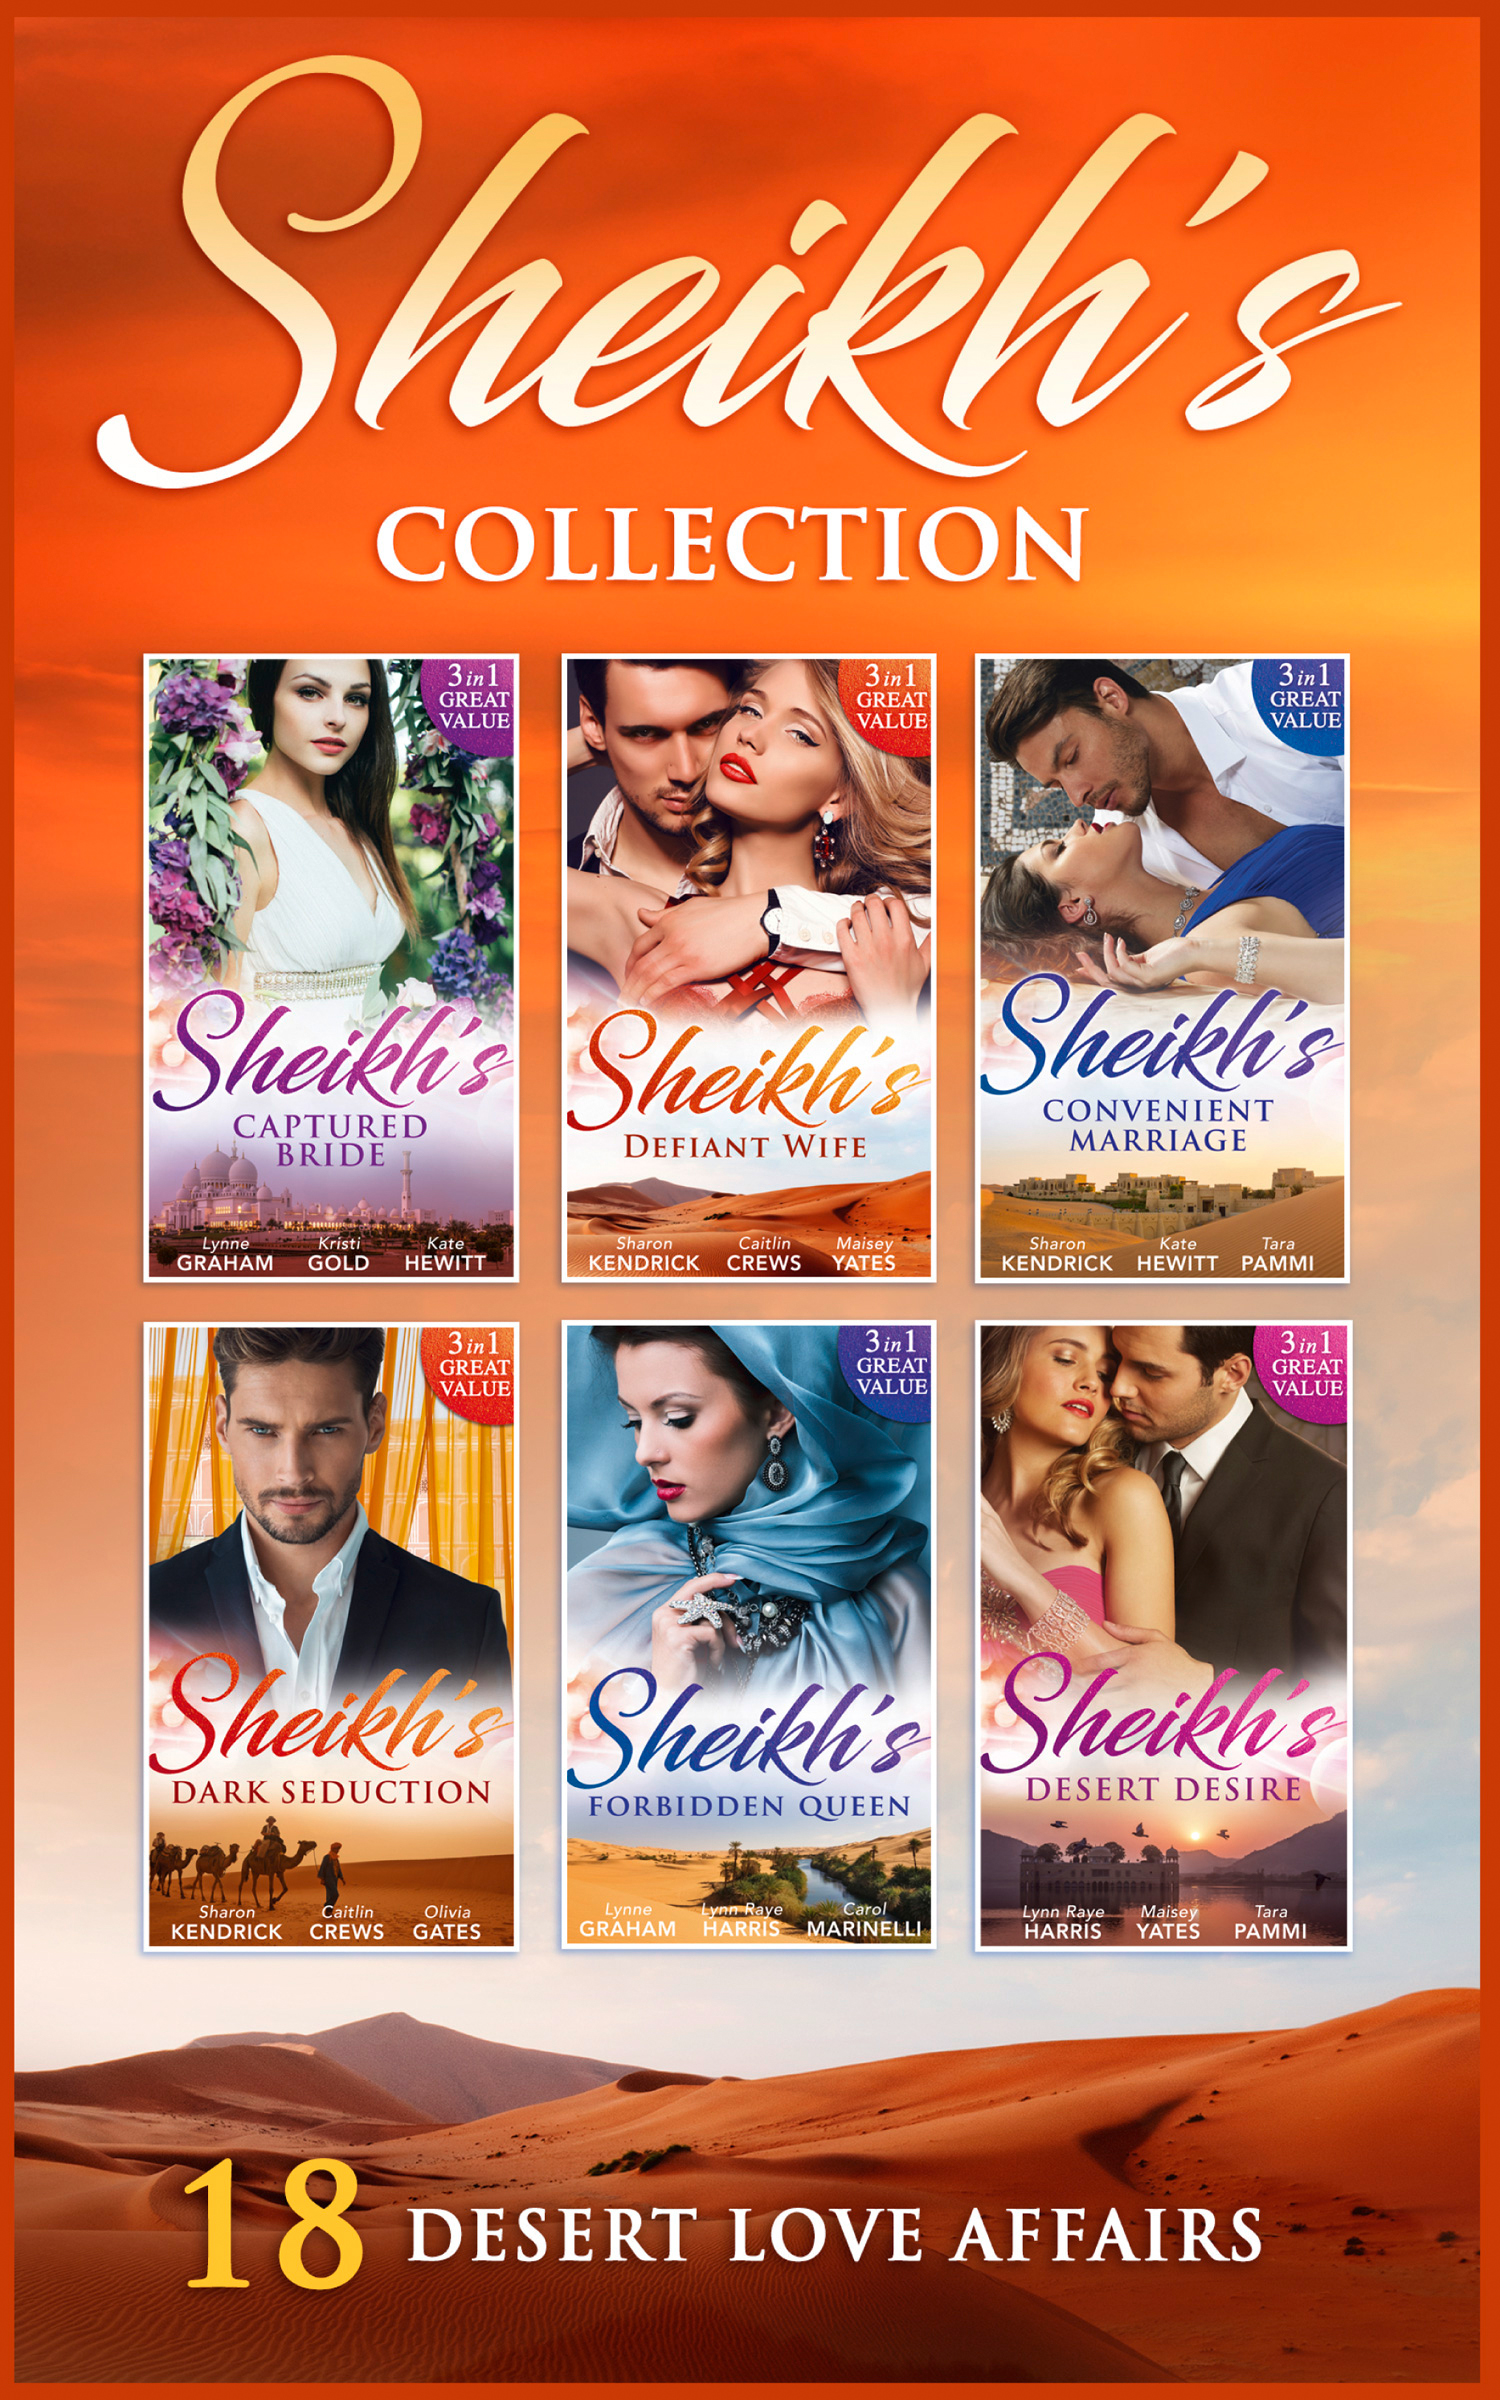 The Sheikh's Collection